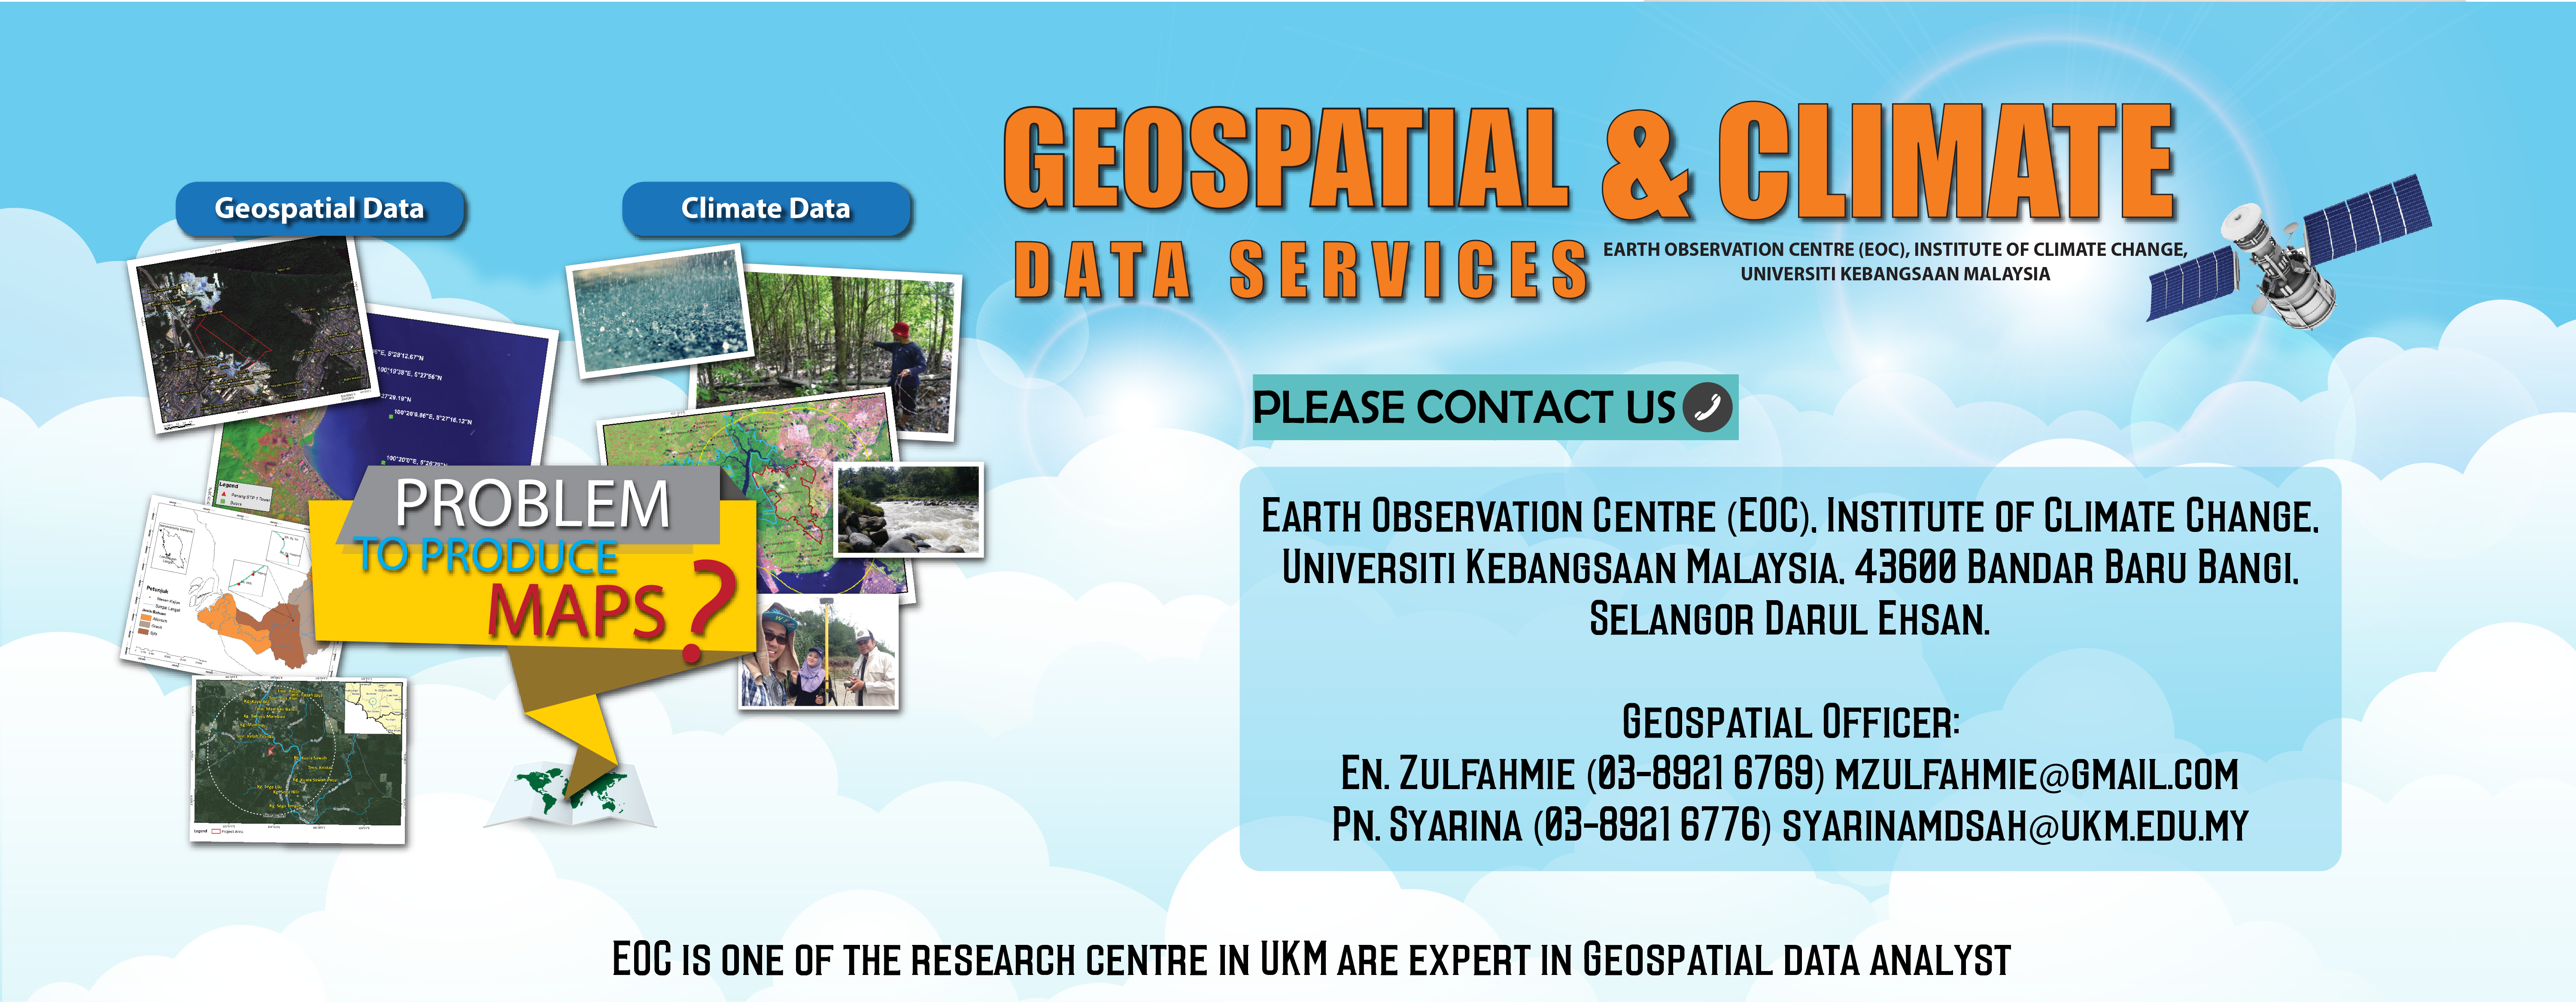 Geospatial & CLimate Data Services